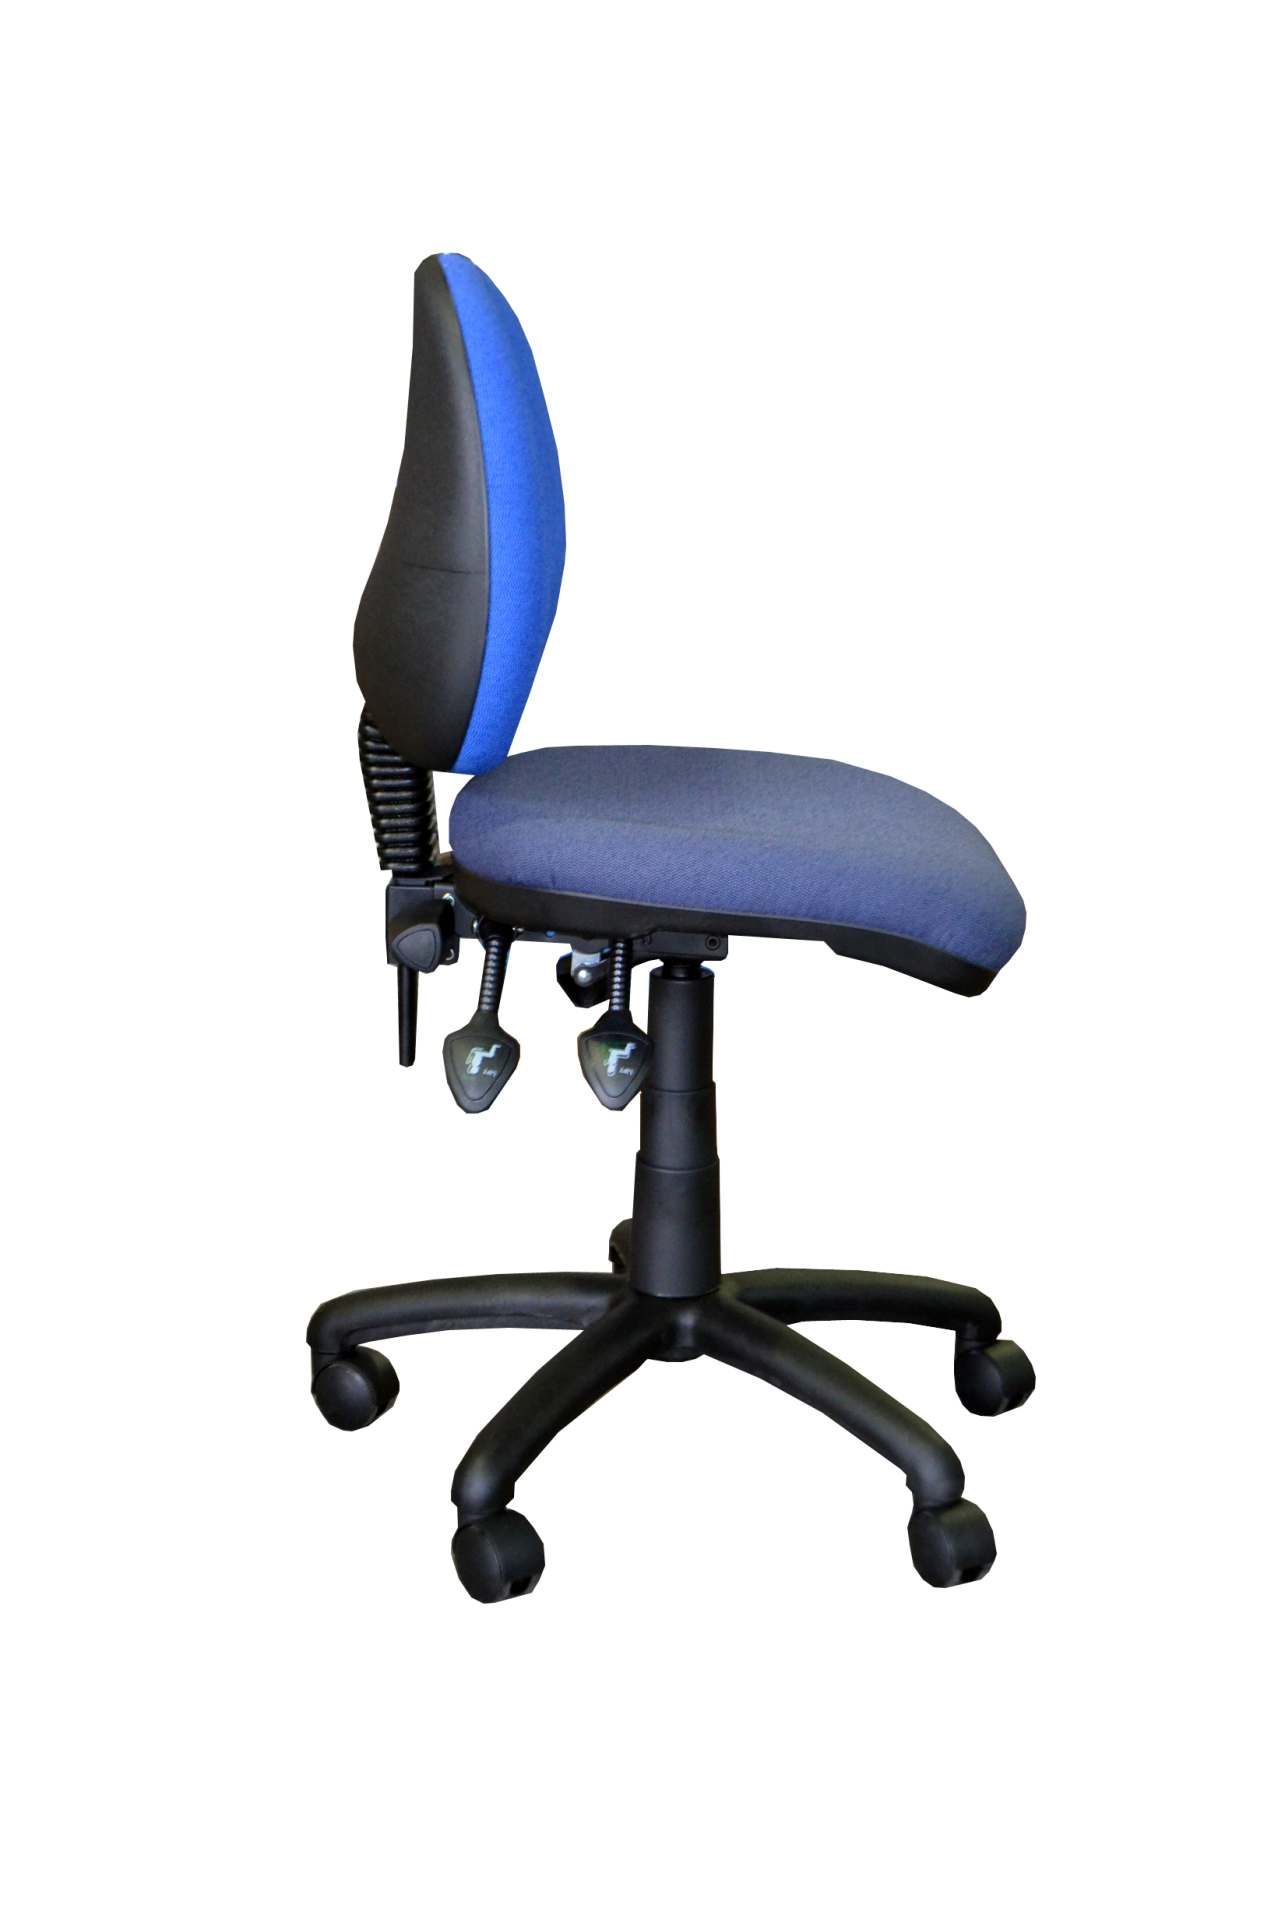 Direct Ergonomics | Sydney Office Furniture | Ergonomic Furniture | Ergonomic Seating | Executive and Task Seating | Office Chair |Breeze 300